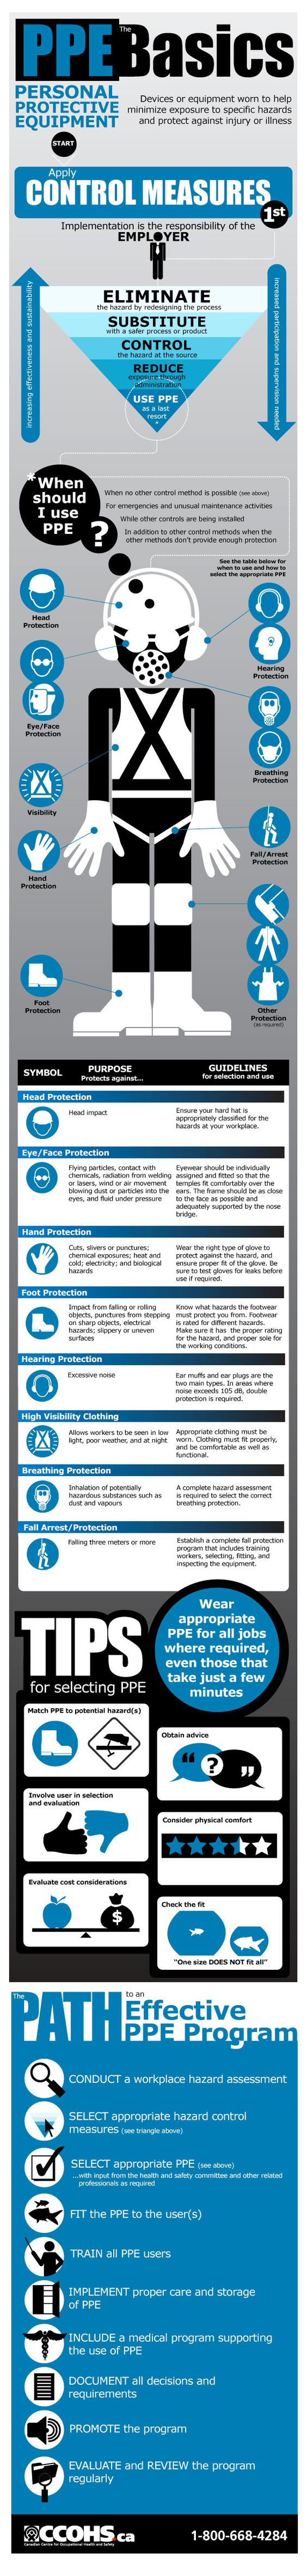 Learn more about the most common types of PPE, as well as